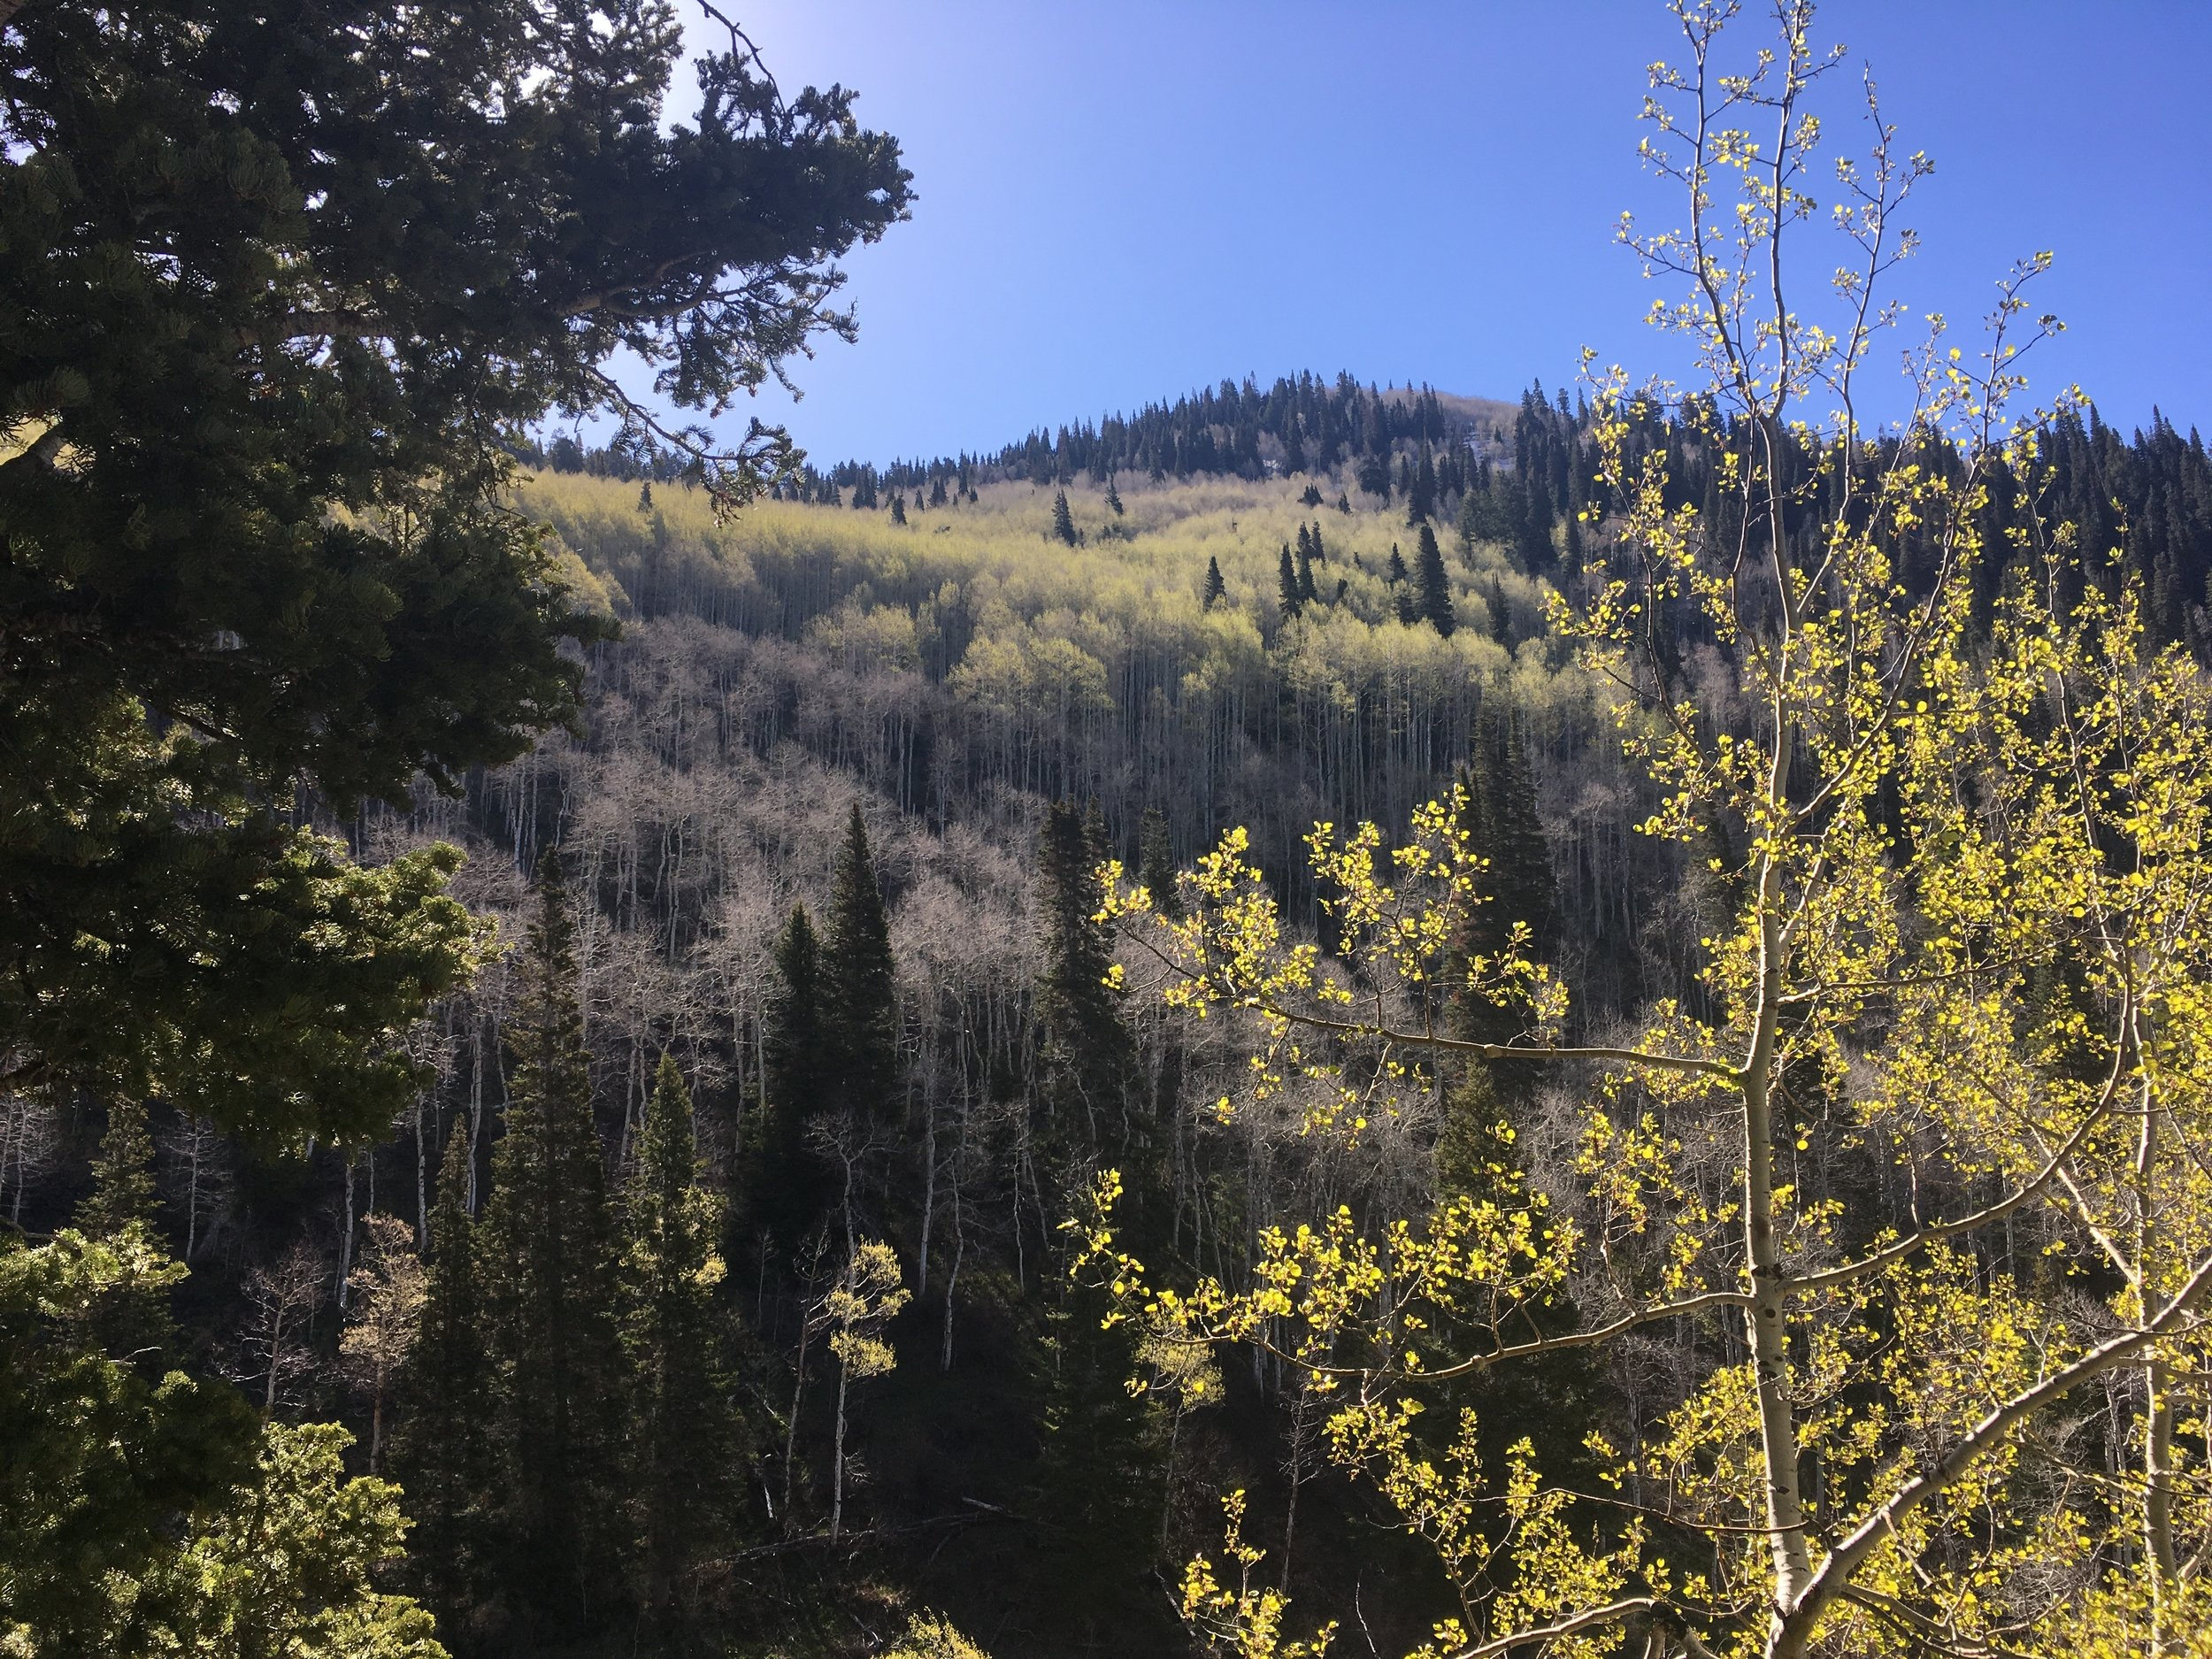 A trek through Big Cottonwood Canyon, just outside of Salt Lake City, UT.